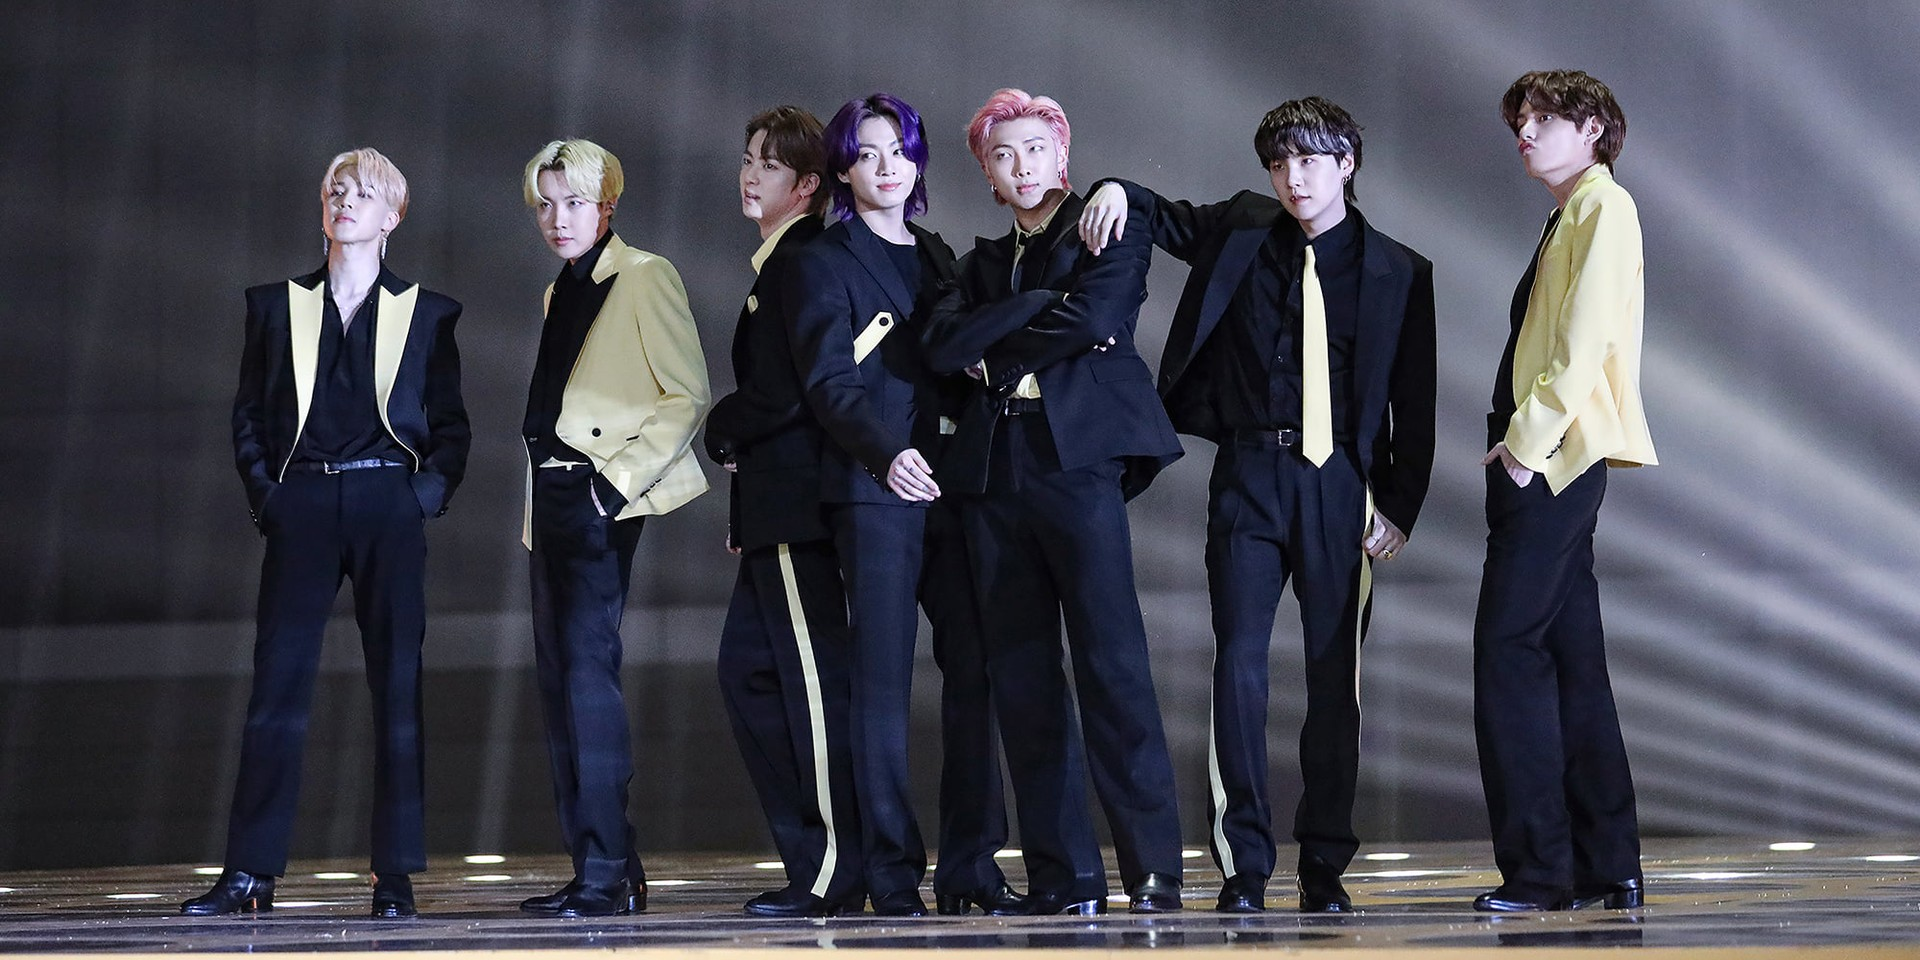 BTS thank ARMY as 'Butter' gets biggest Spotify debut with over 20 million global streams, light up Twitter with #BTS_Butter